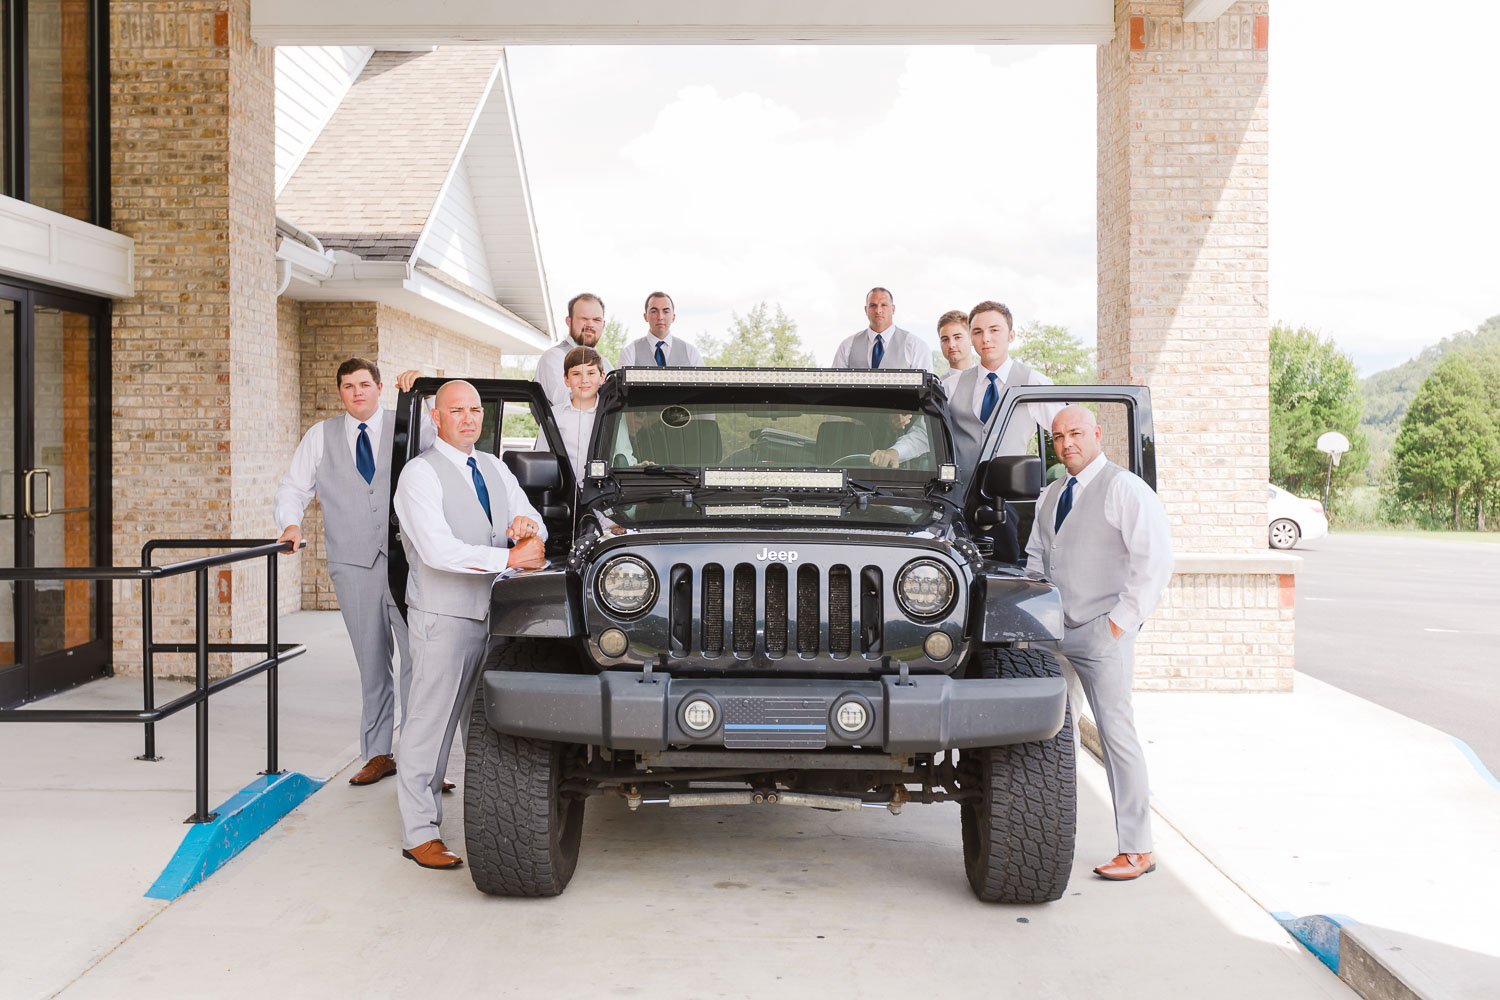 guys outside in gray suits gathered around a black jeep in Sevierville TN